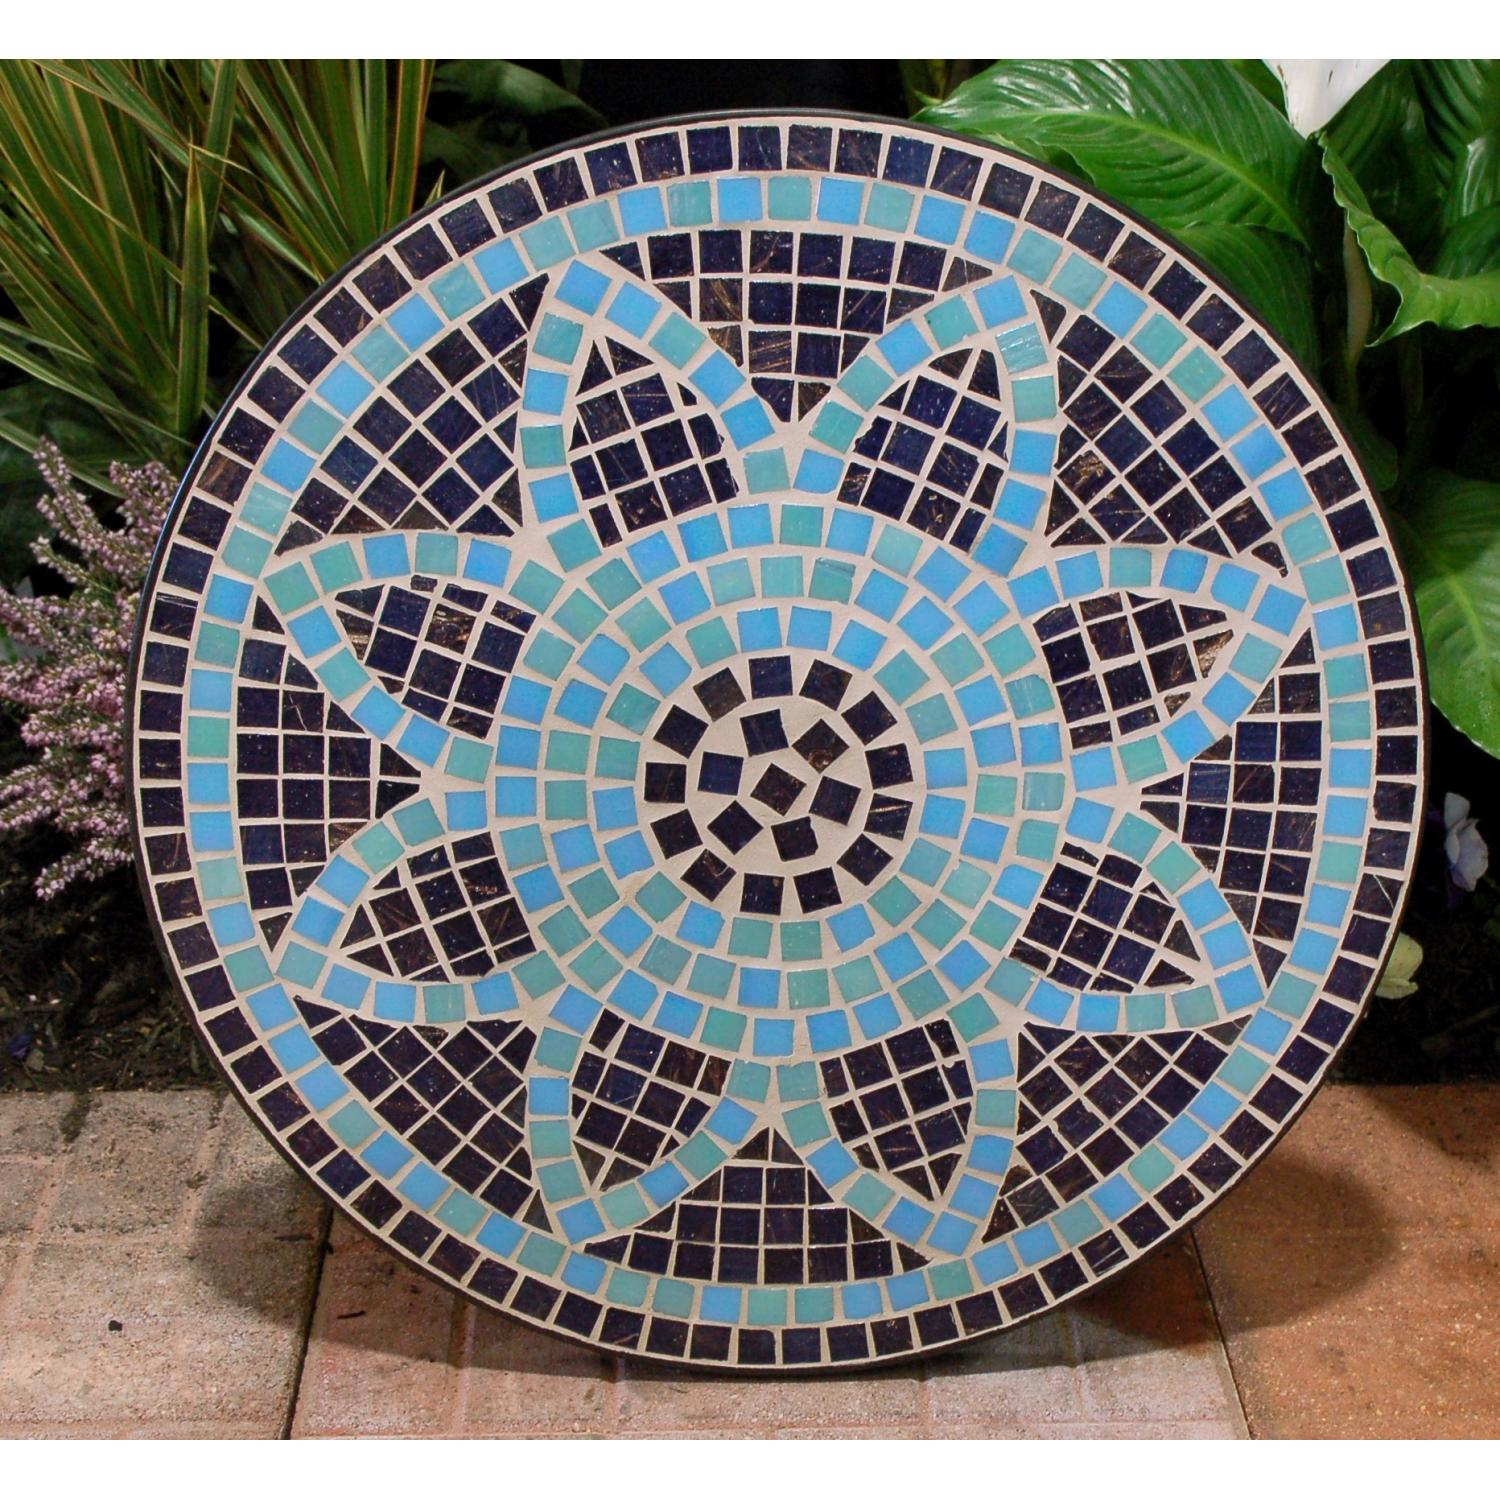 charming round mosaic bistro table in flower motif for patio furniture ideas - Mosaic Design Ideas